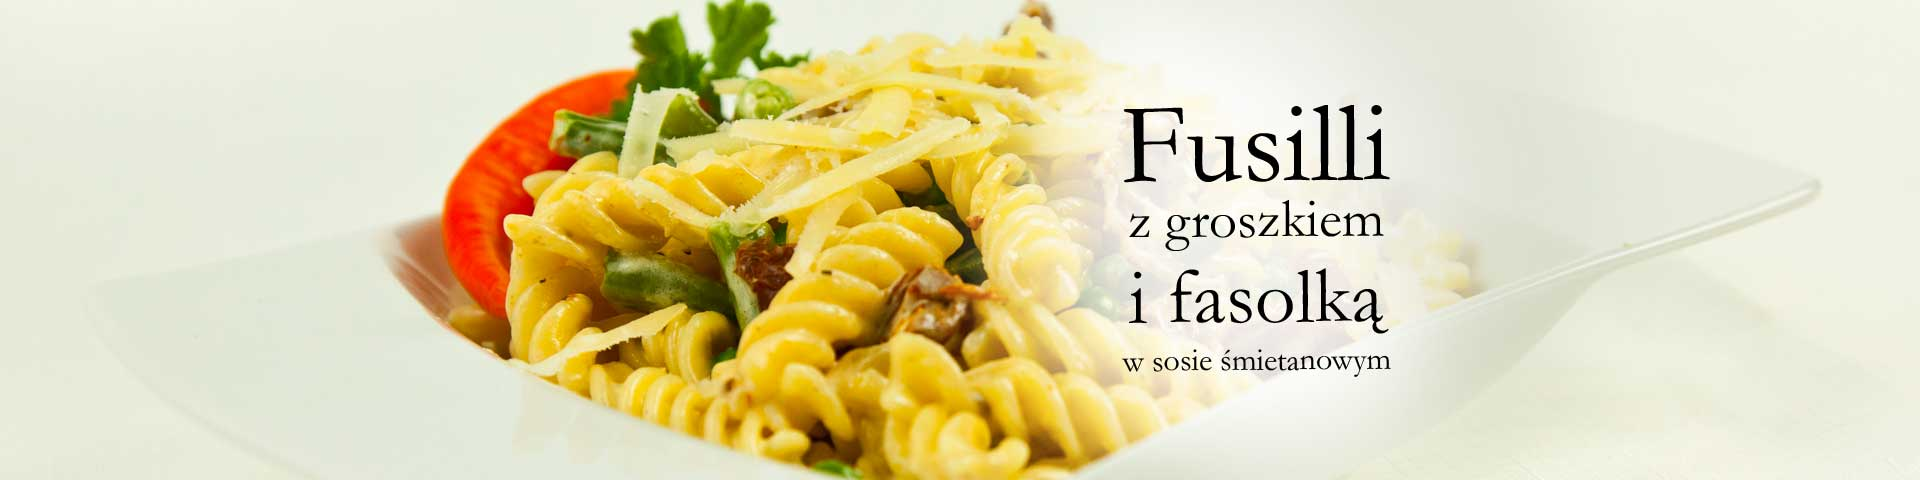 Fusilli with peas and beans in a cream sauce